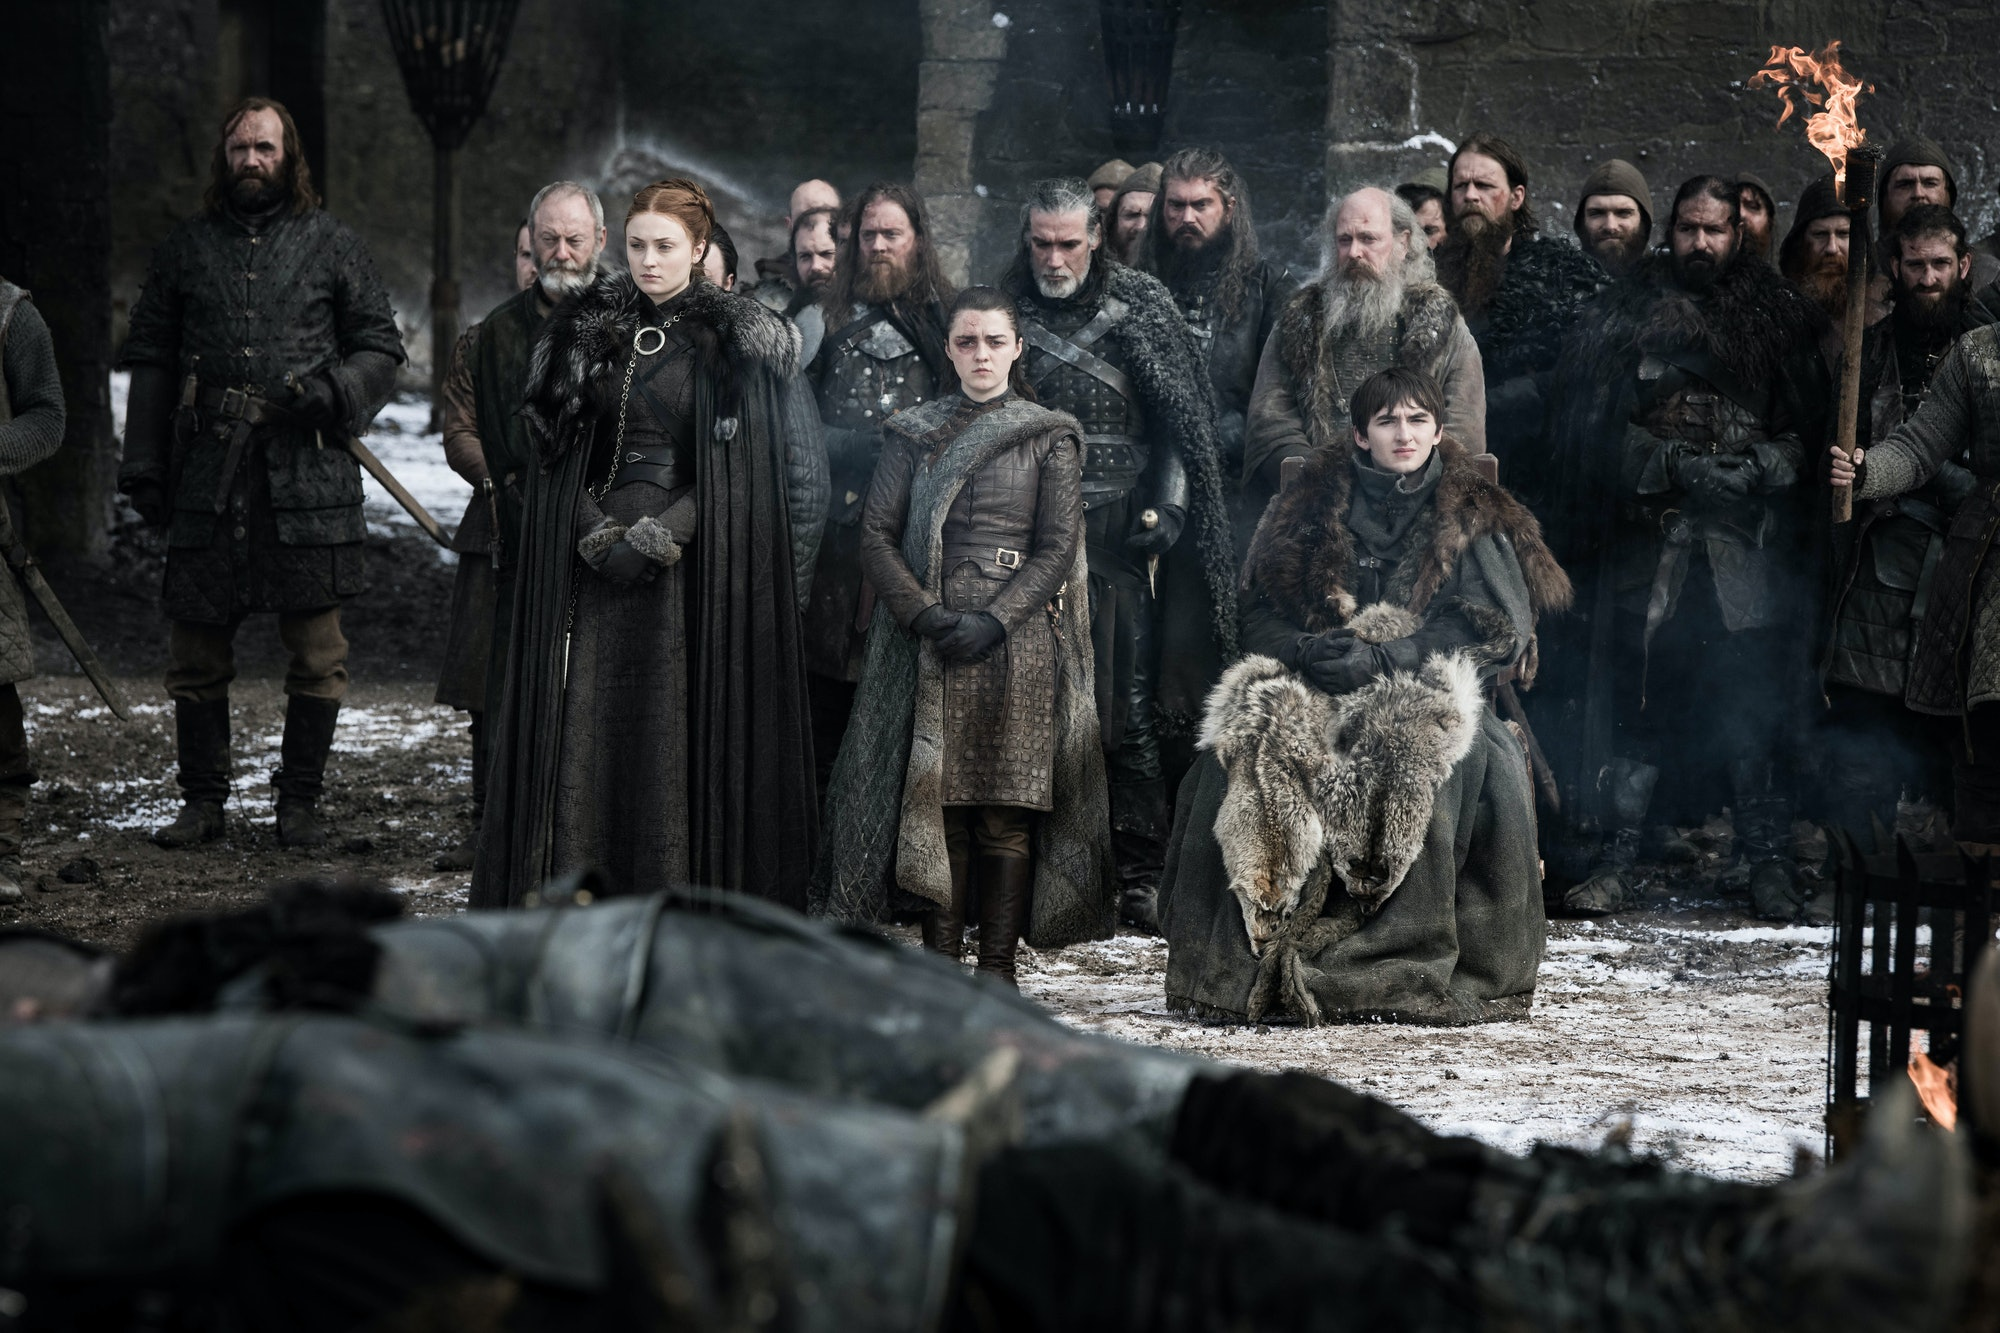 In this photo from Episode 4, Arya Stark sports injuries from the Battle of Winterfell.